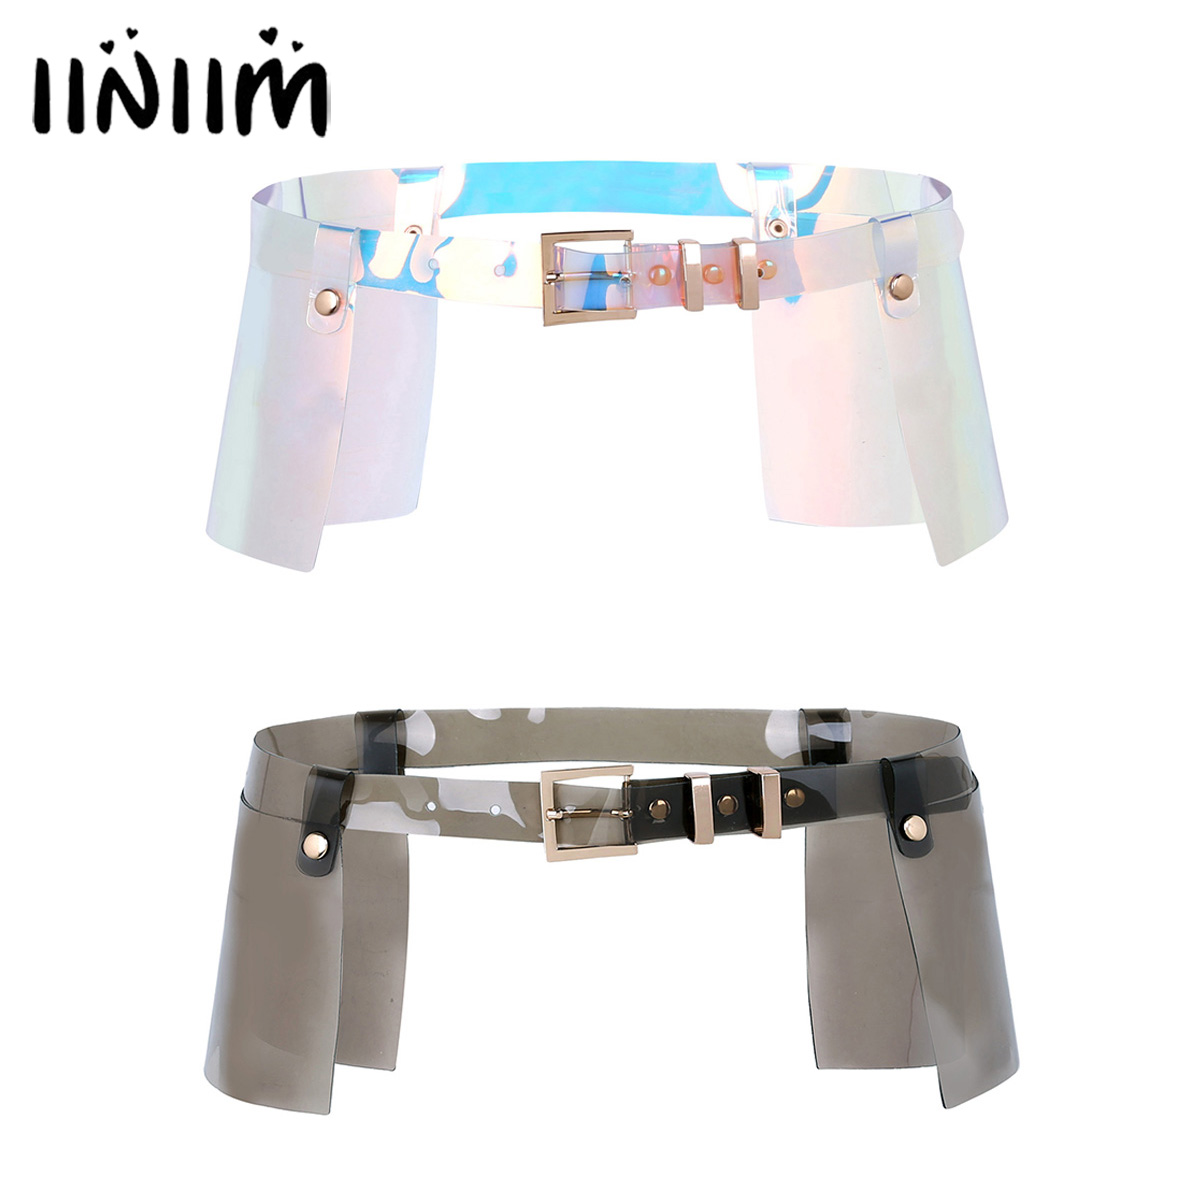 Women Fashion Punk Shiny Clear PVC Adjustable Body Waist Belts Skirt Roleplay Costume Clubwear Performance Clothing Accessories